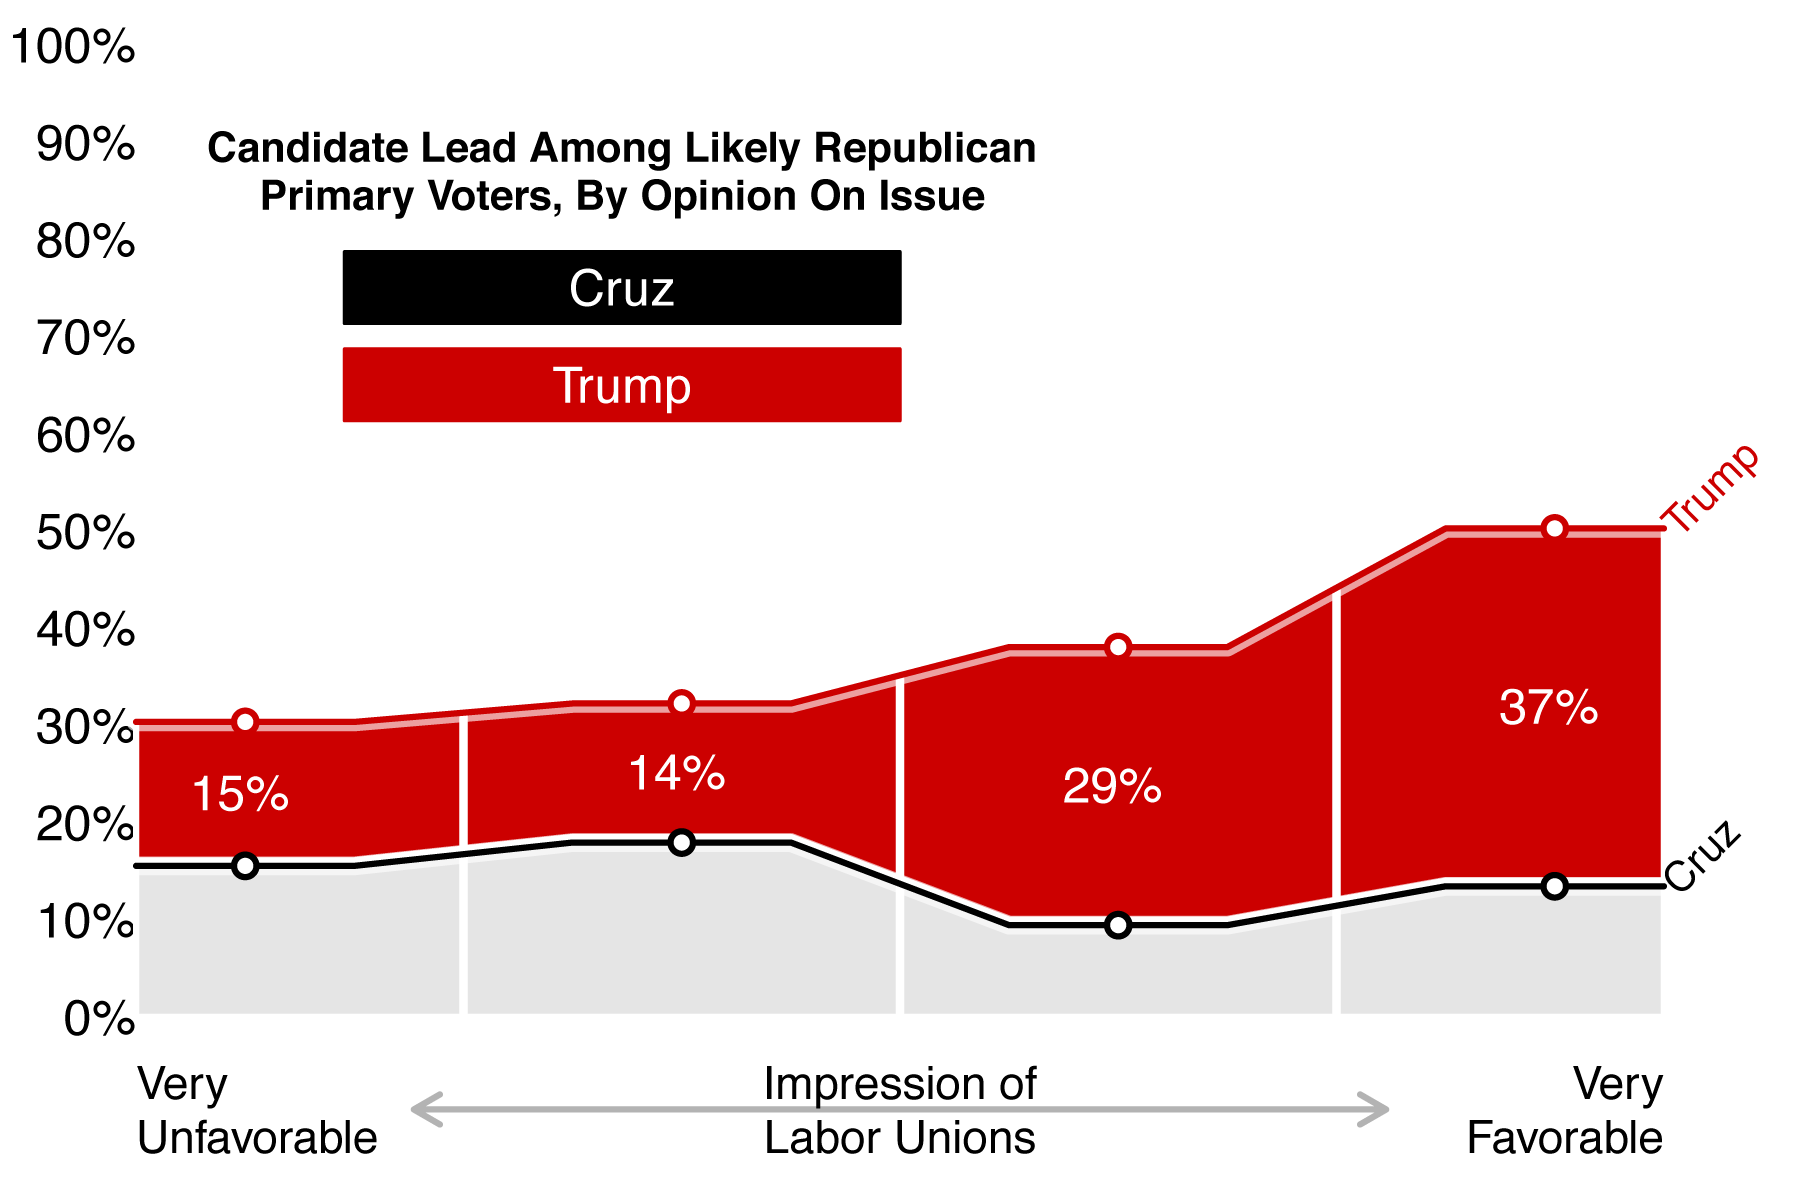 Figure 5: Candidate Lead Among Likely Republican Primary Voters, by Opinion on Labor Unions